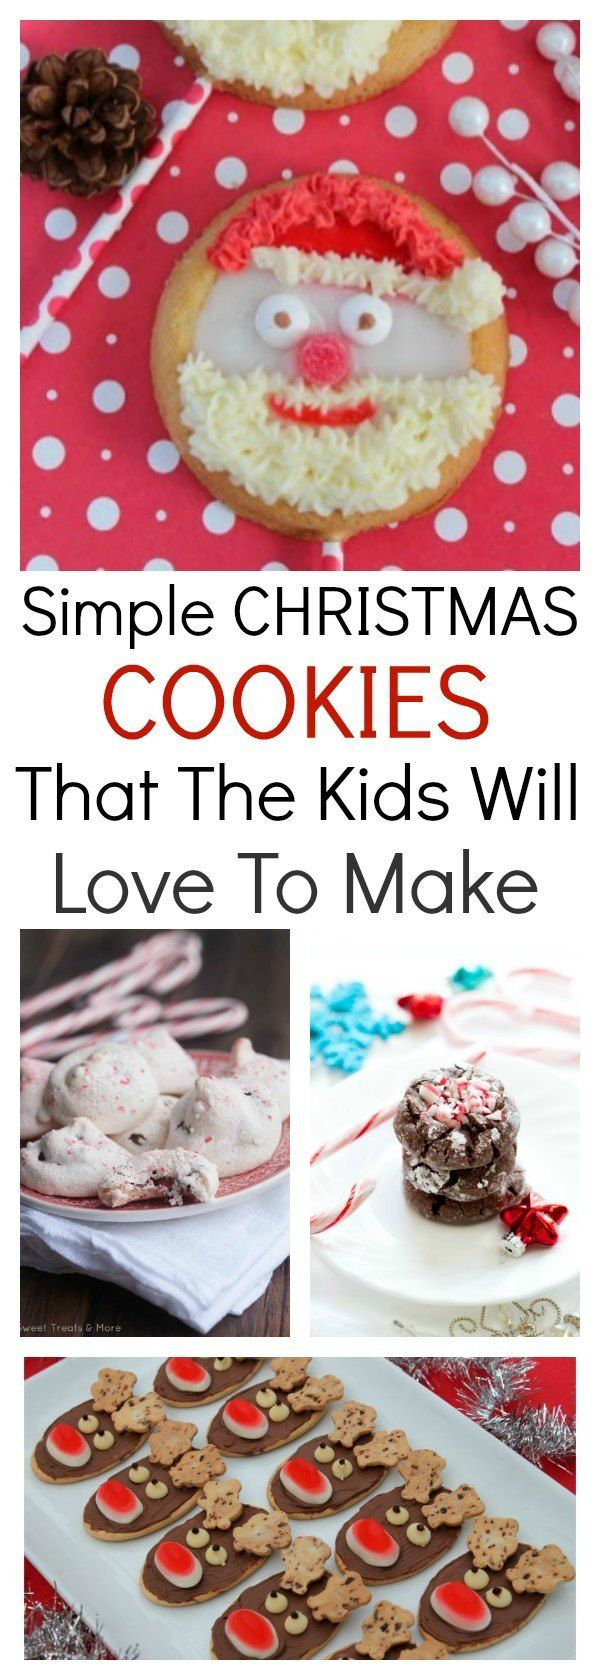 This collection of simple Christmas cookies will have you in the kitchen with the kids quick smart. Cute, easy & delicious, they are perfect for Christmas. #Christmas #Cookies #Kids